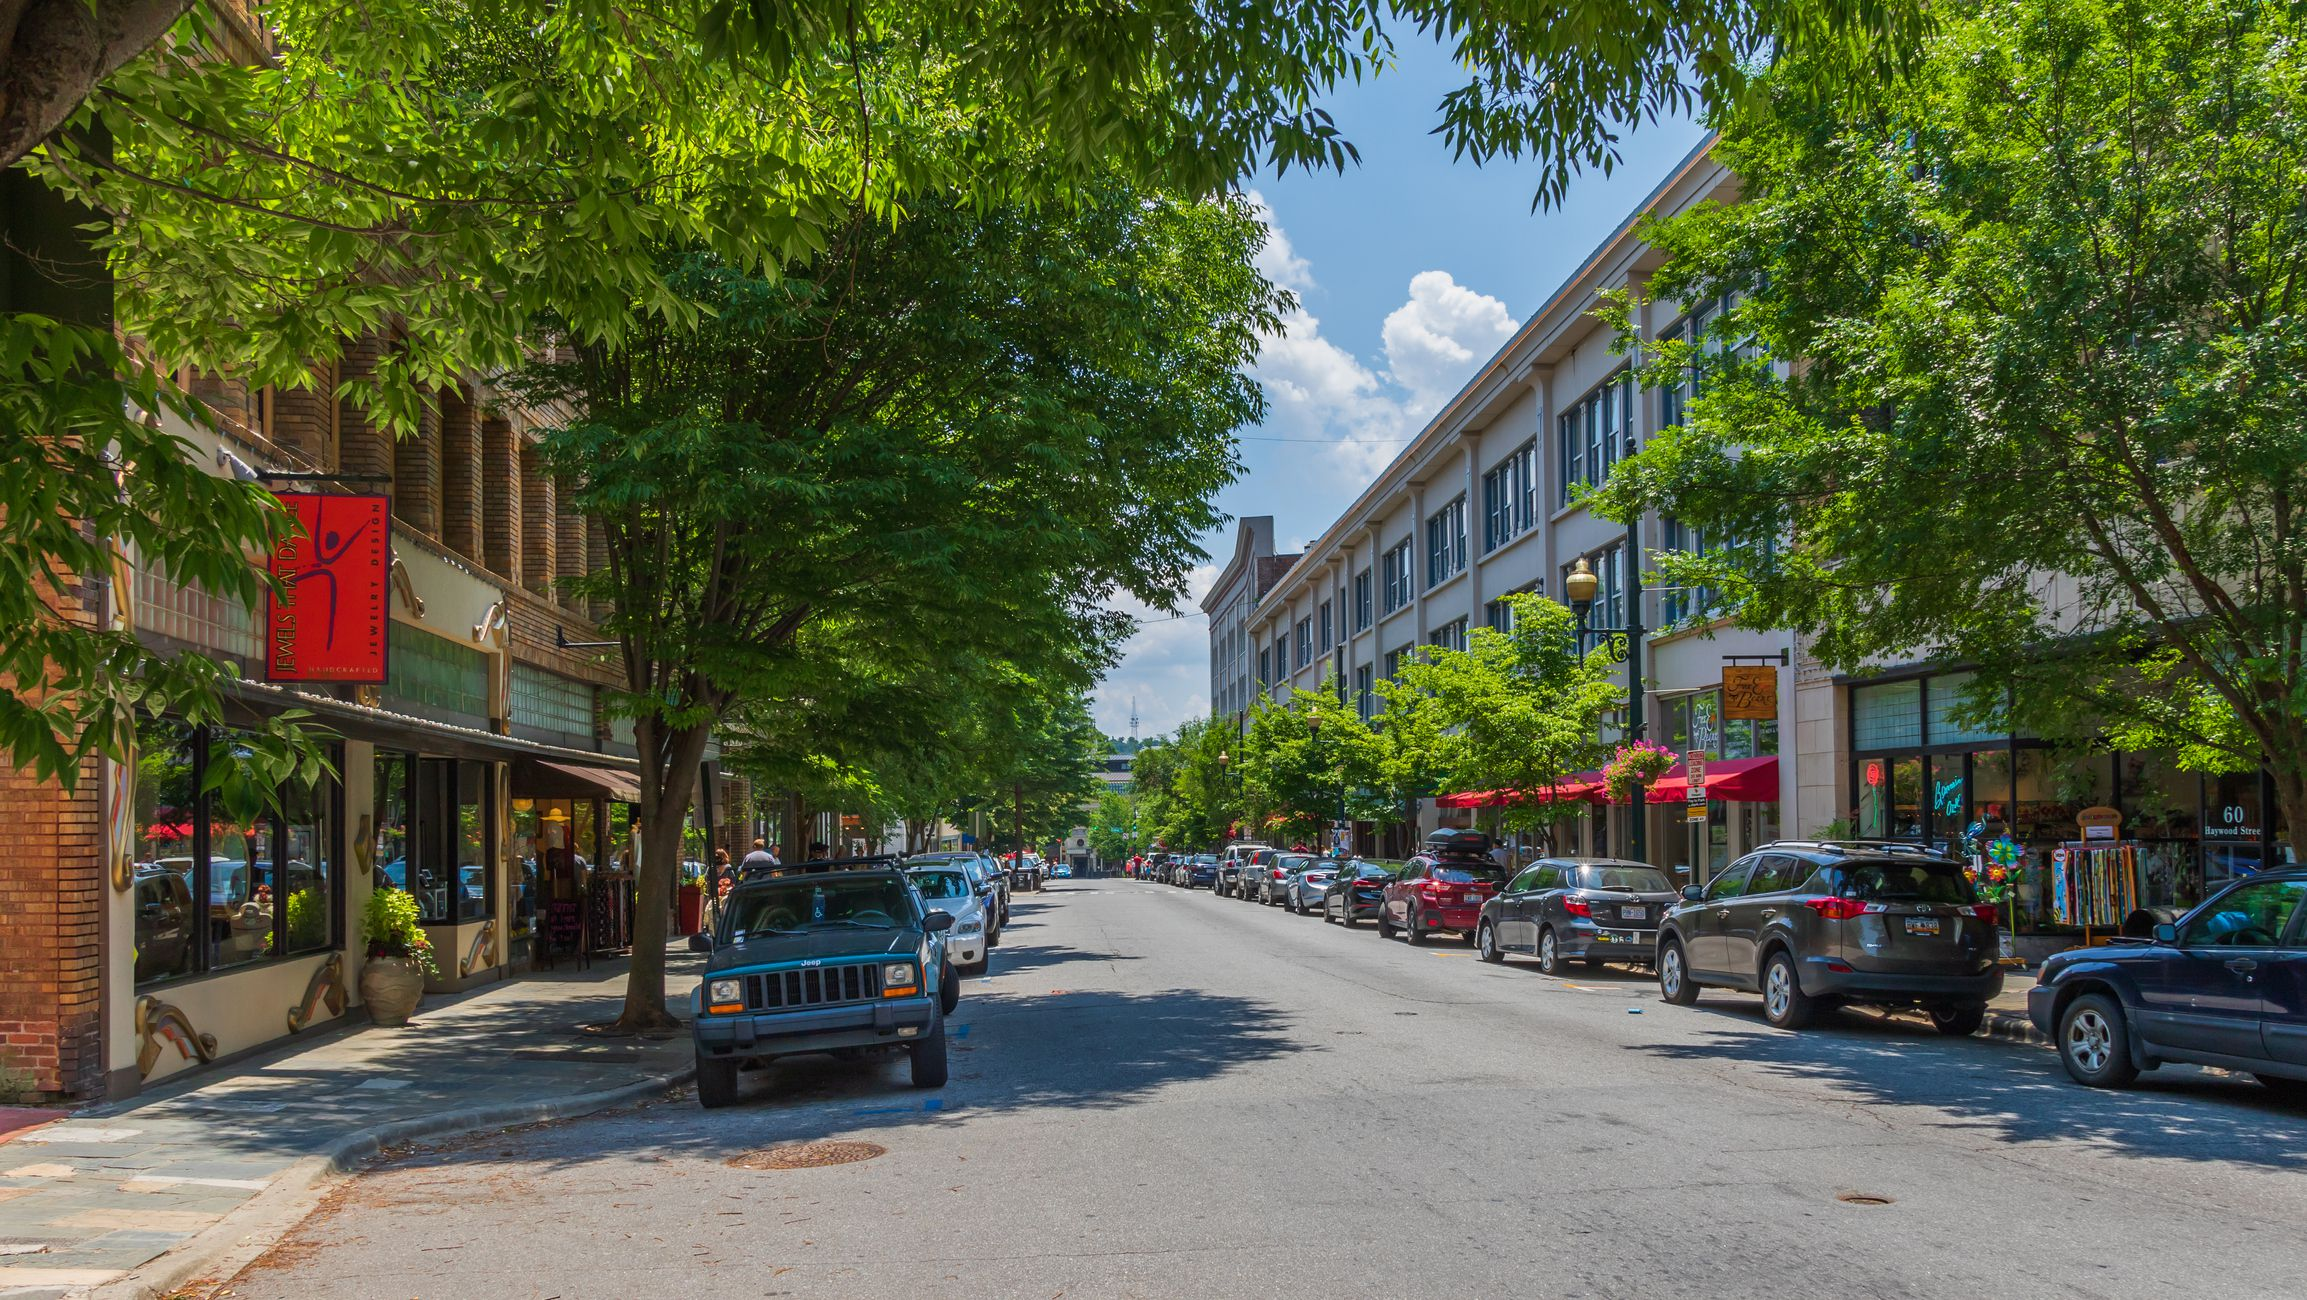 Your Complete Gay Guide to Asheville, North Carolina